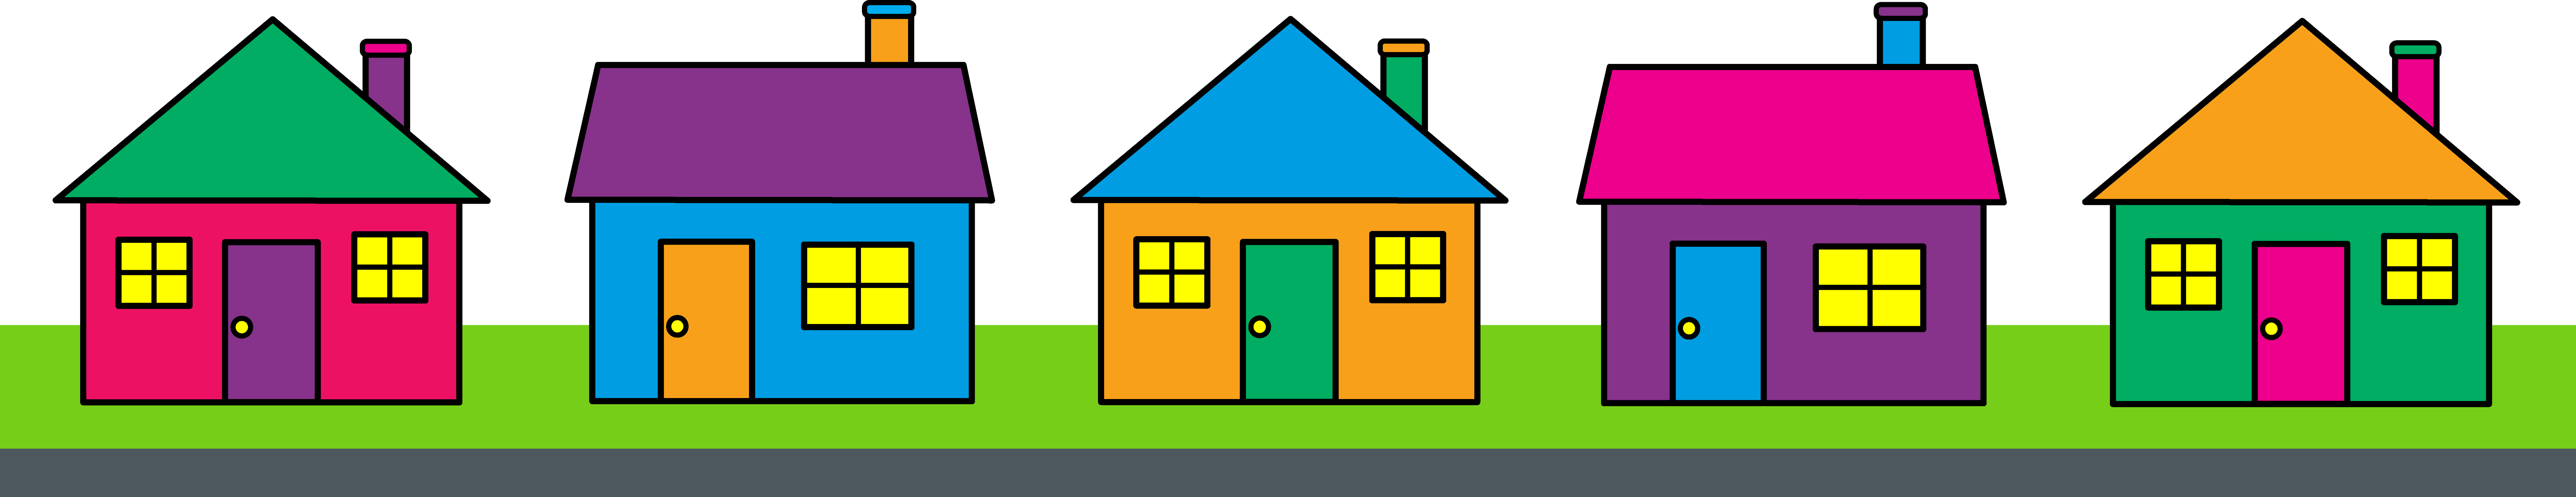 Cute House Clipart Wallpapers Hd 30580 Images Cute House Clipart